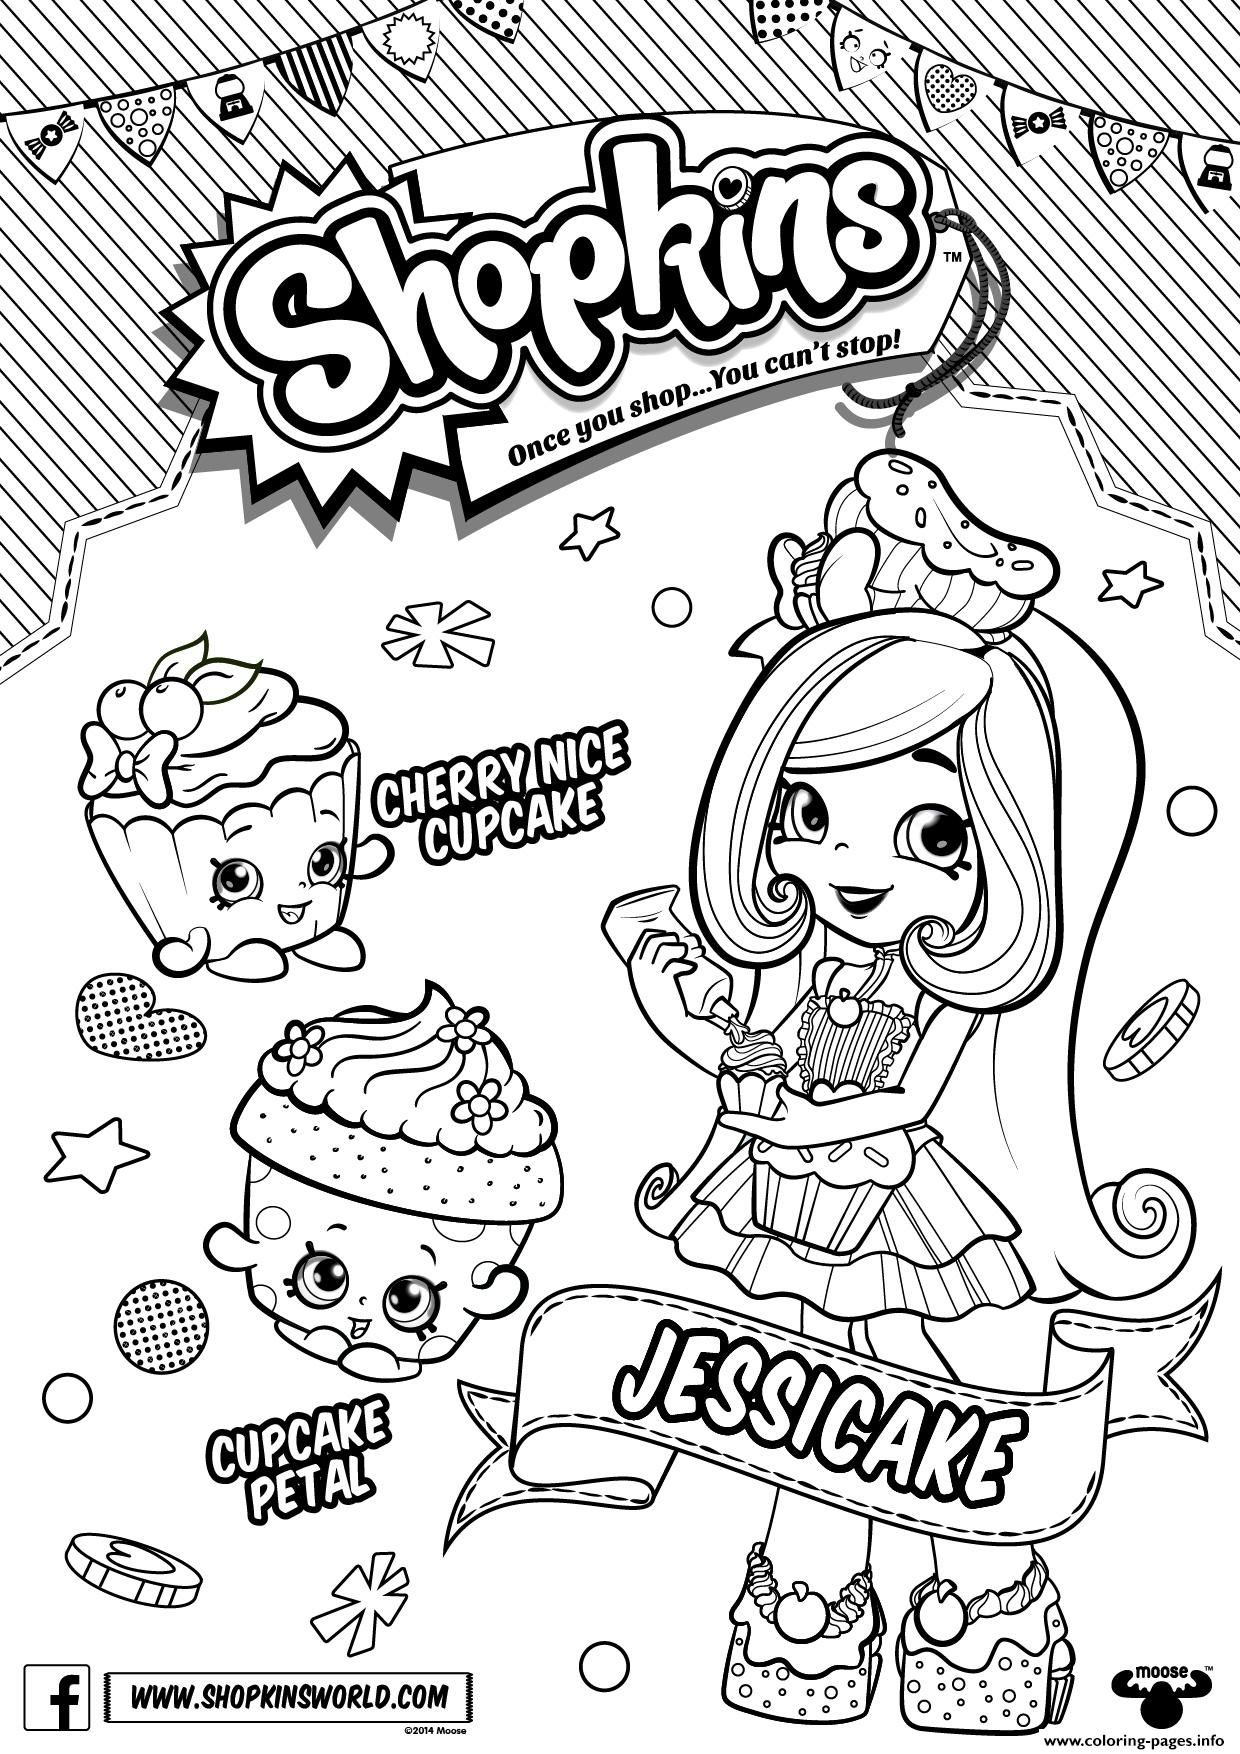 Shopkins coloring pages season 5 shopkins awesome printable coloring - Print Shopkins Season 6 Chef Club Season Coloring Pages